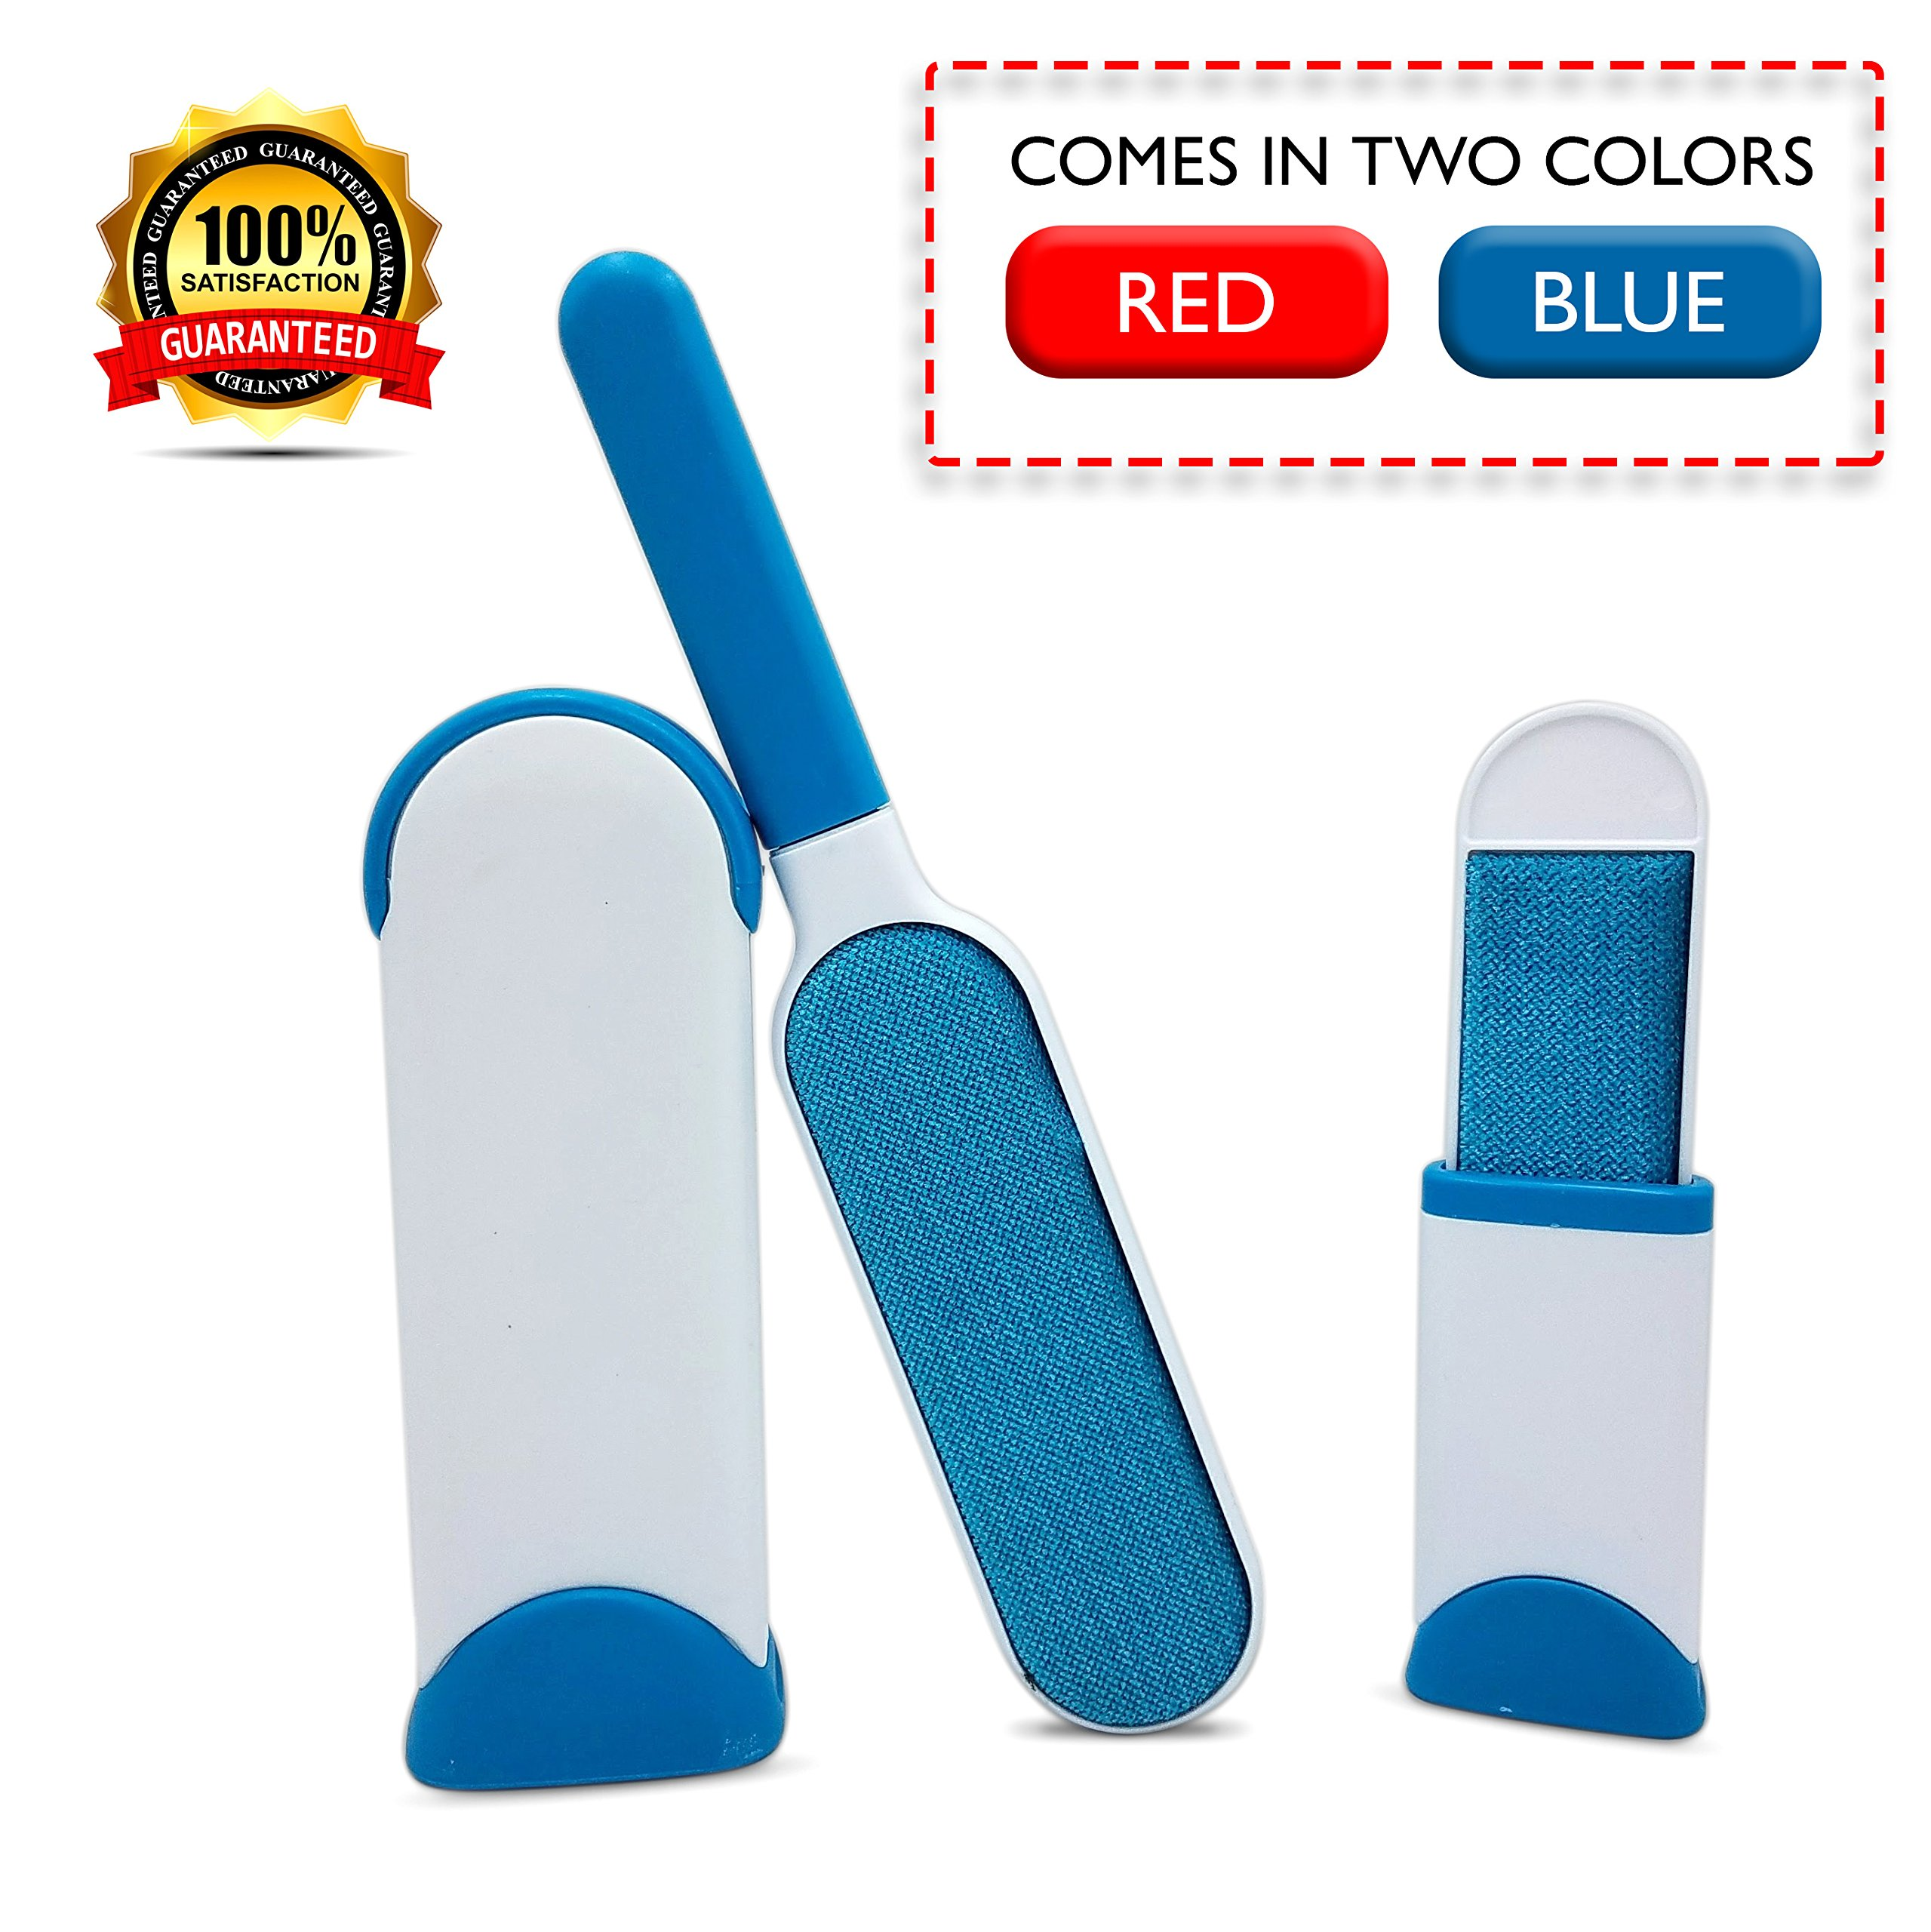 Lint brush, pet hair remover brush. Perfect for removing pet fur or lint from clothing and upholstery. Double-sided self-cleaning brush comes with bonus travel sized brush, available in red and blue